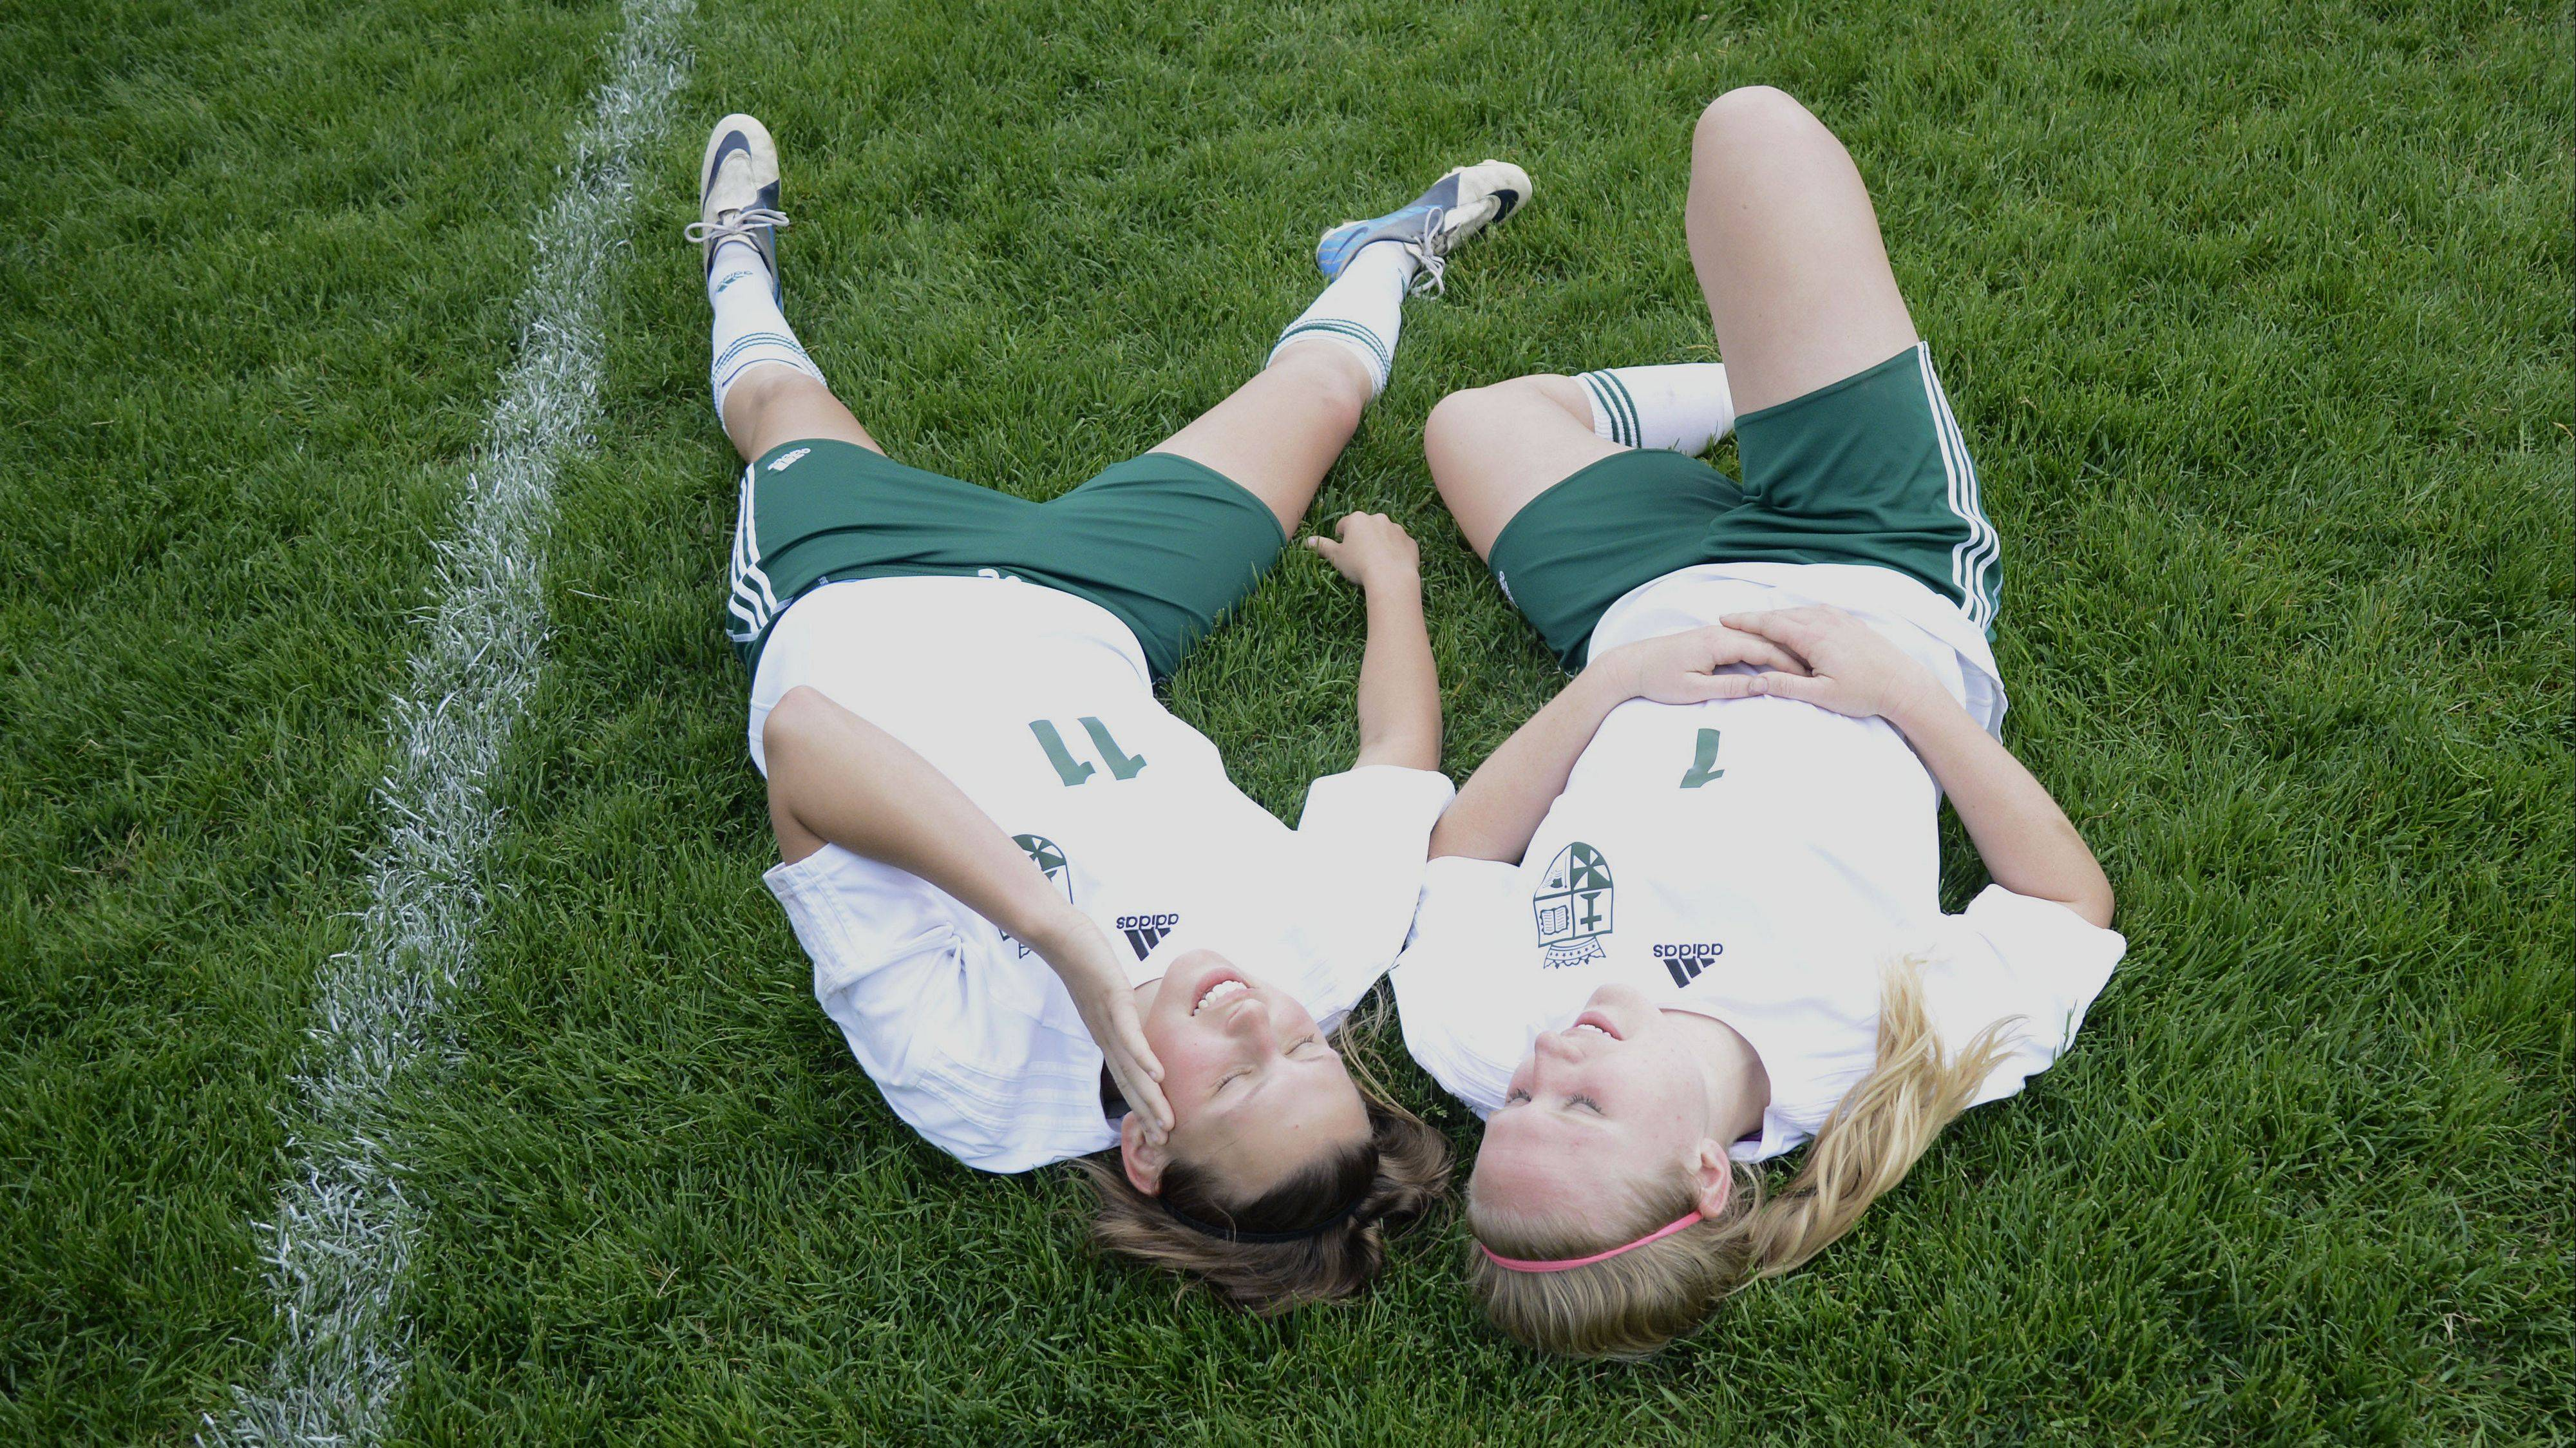 St. Edward's Corey Lepoudre, right, relaxes with teammate Allison Kruk while teammates take photos after their Class 1A sectional title game win over Willows Academy. Lepoudre is the honorary captain of the 2013 Fox Valley all-area team for girls soccer.